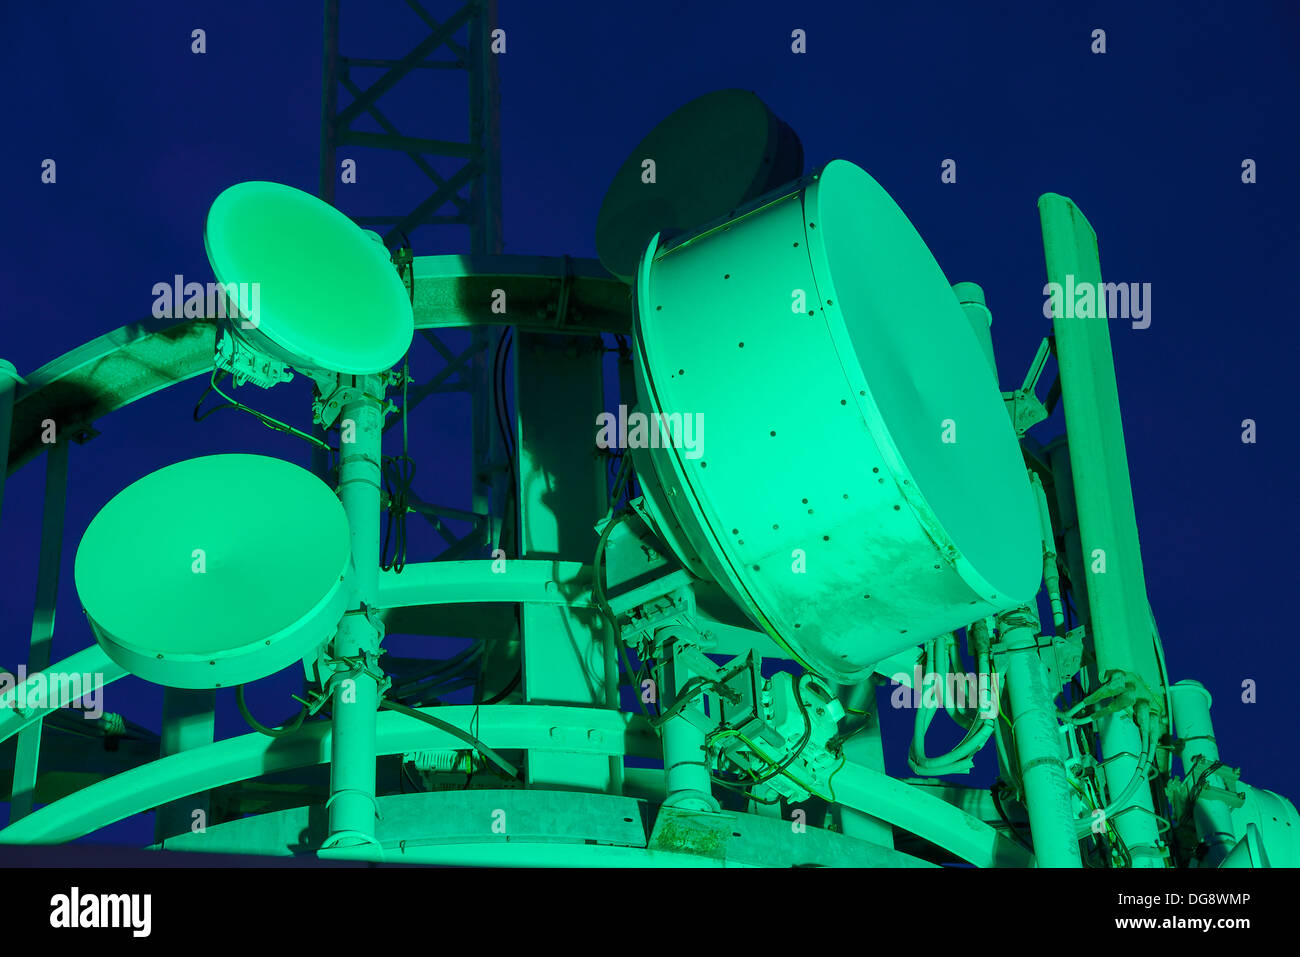 Radio and microwave communication dishes on a transmitter tower at night - Stock Image